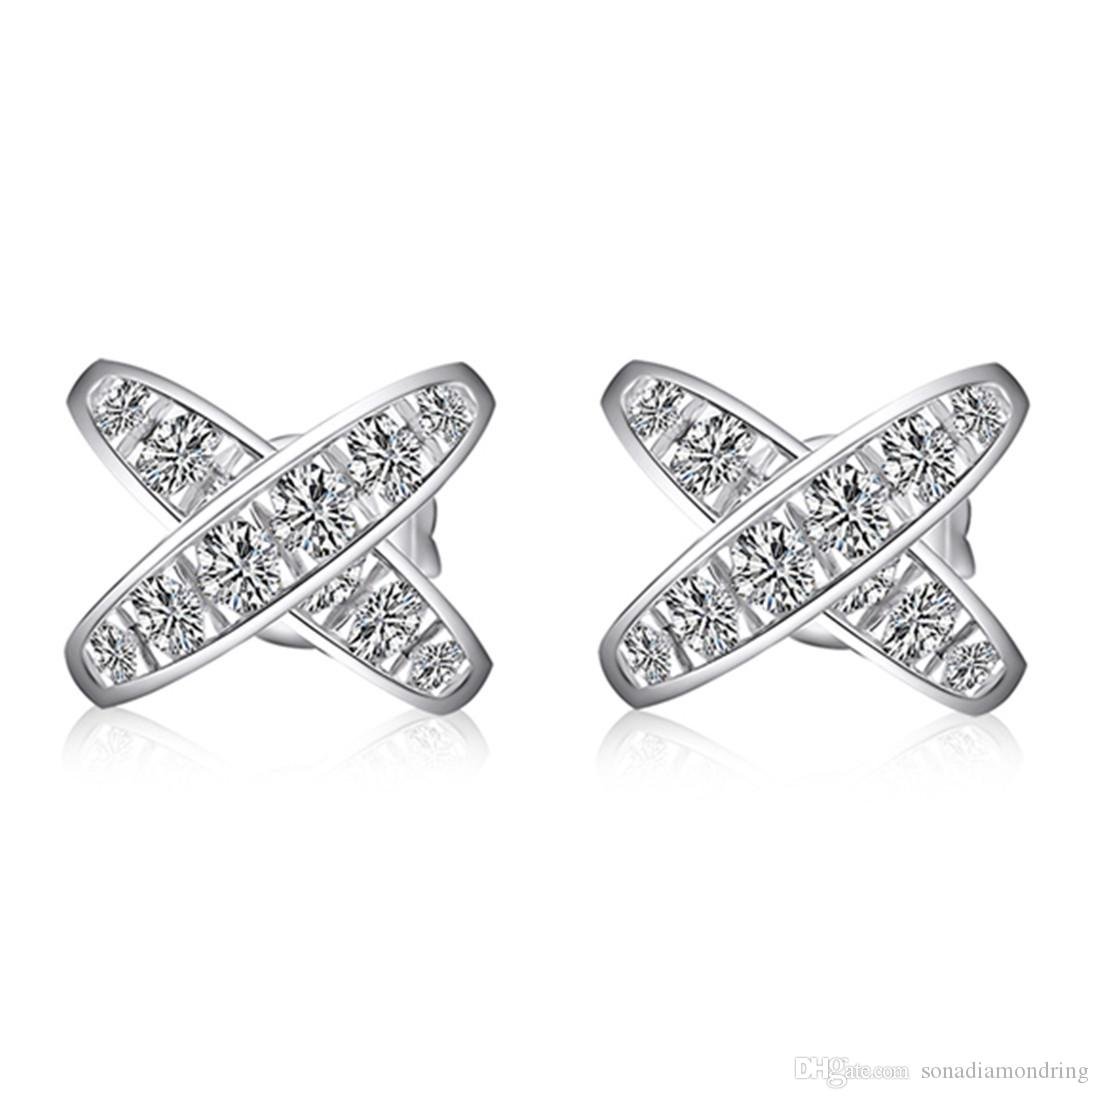 31a538c71 Brand Cross Earrings Stud with Accent 925 Sterling Silver Earring ...